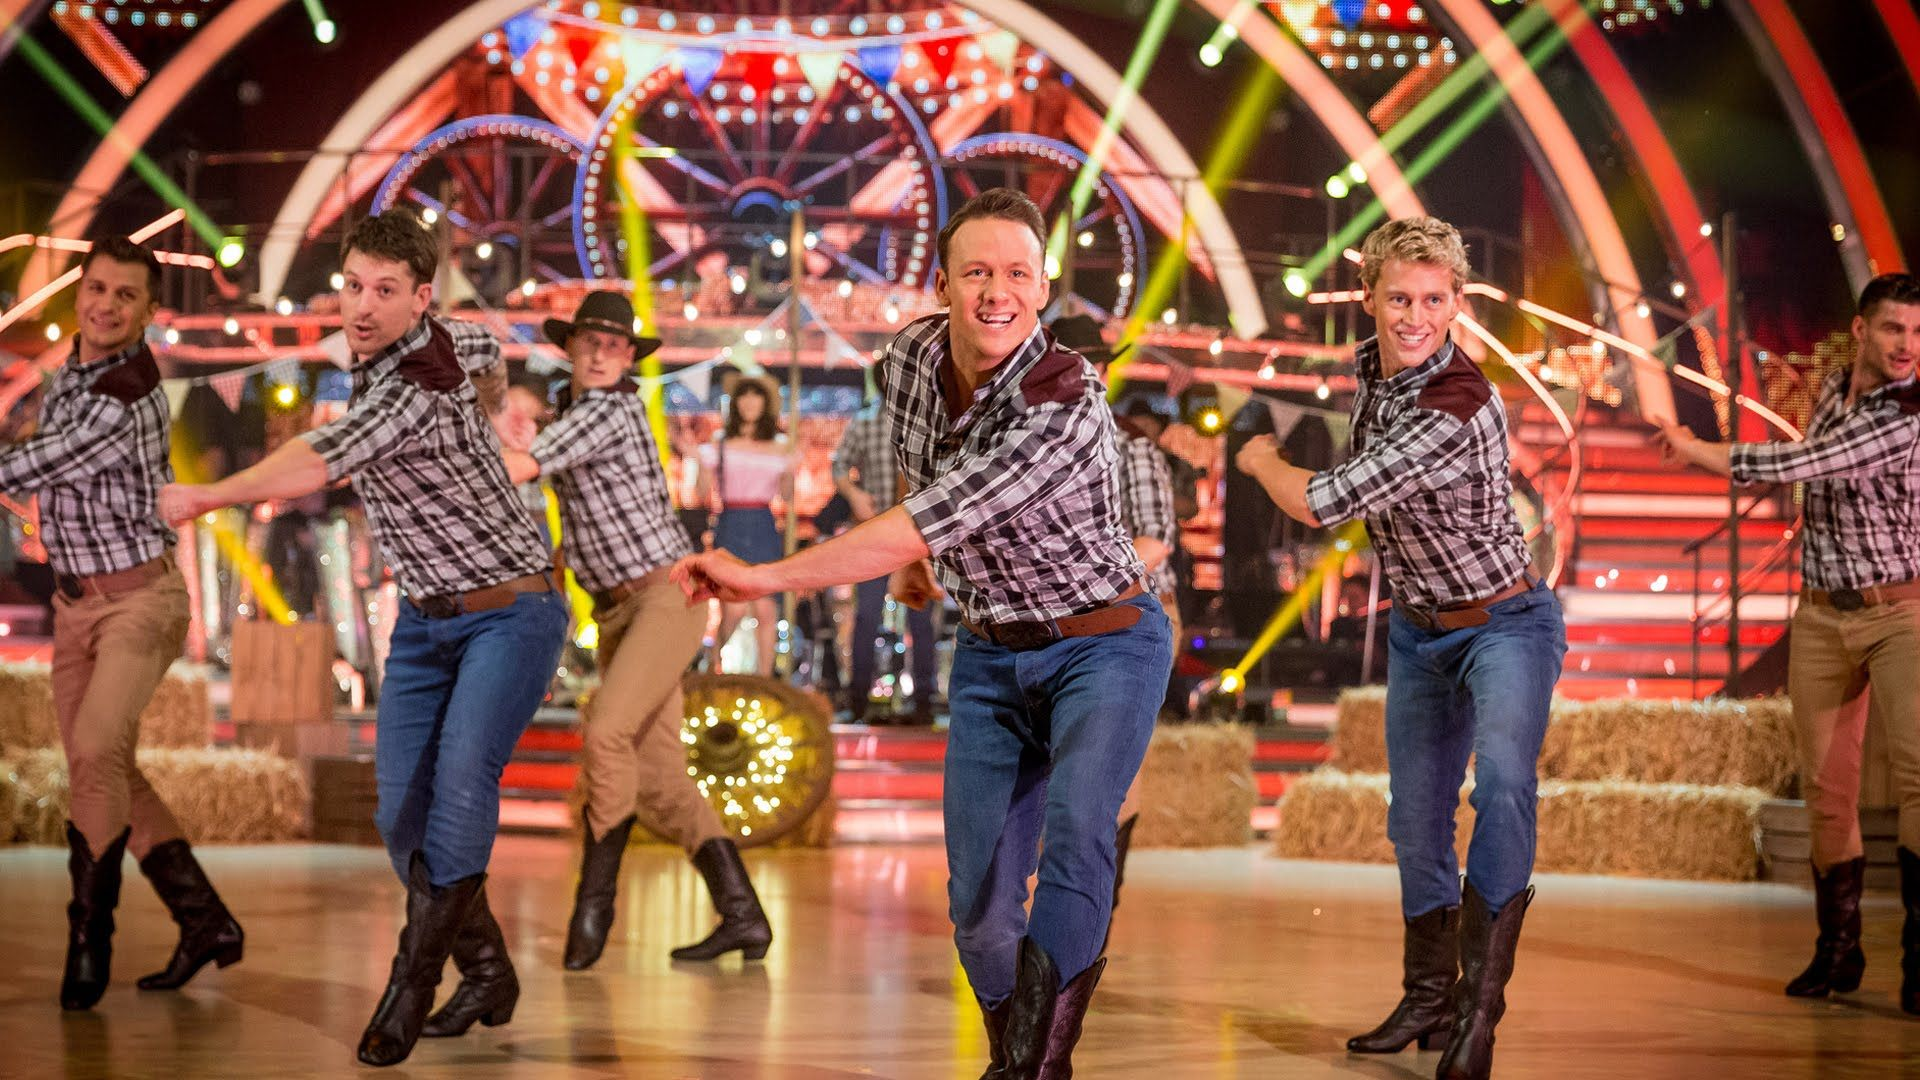 Strictly Pros Dance To Cotton Eyed Joe Timber Medley Strictly Come Dancing 2014 Bbc One Strictly Come Dancing Bbc Strictly Come Dancing Cotton Eyed Joe